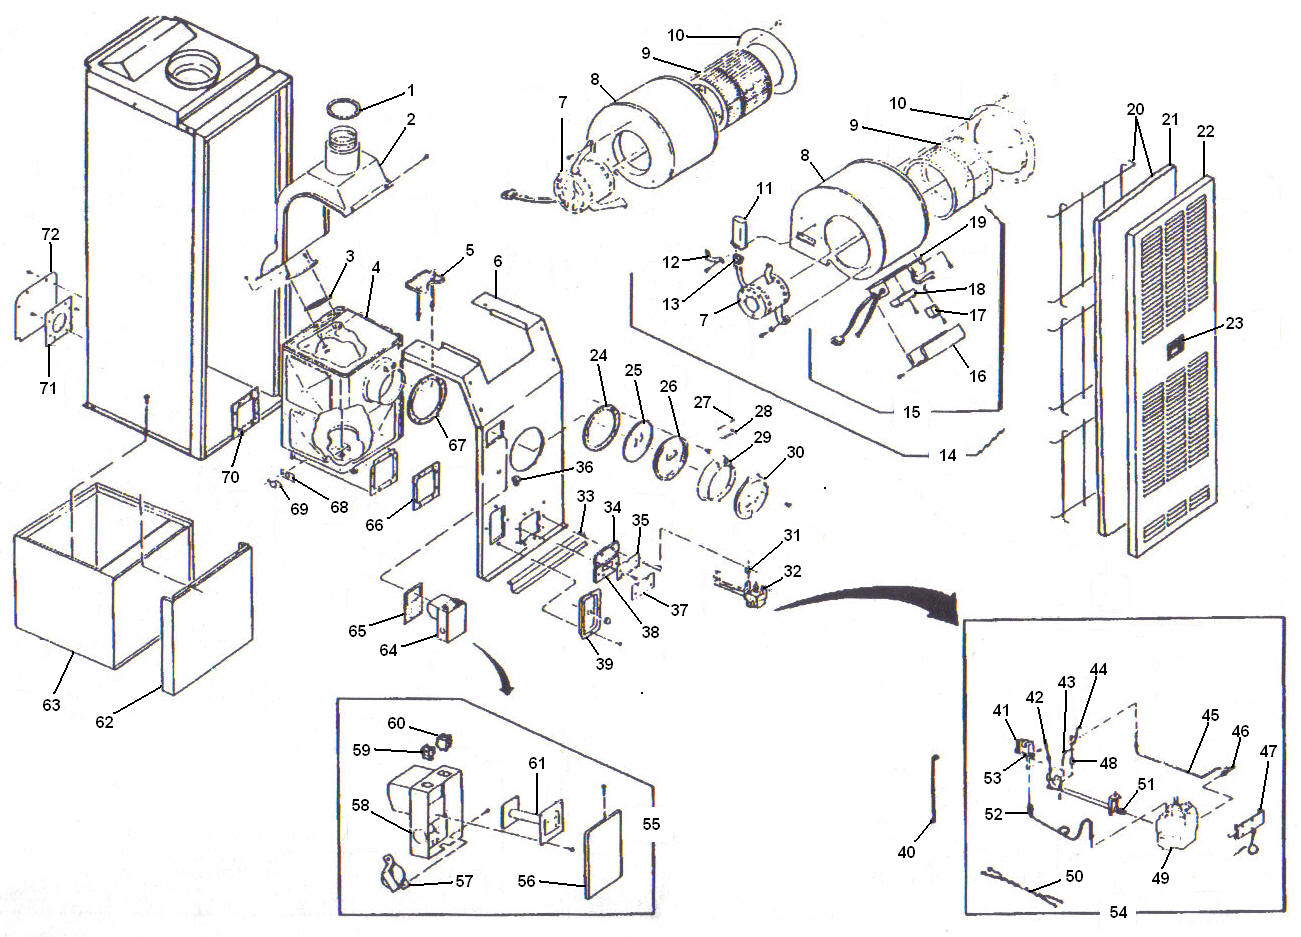 oil furnace parts diagram dell dimension 2400 motherboard miller breakdown pictures to pin on